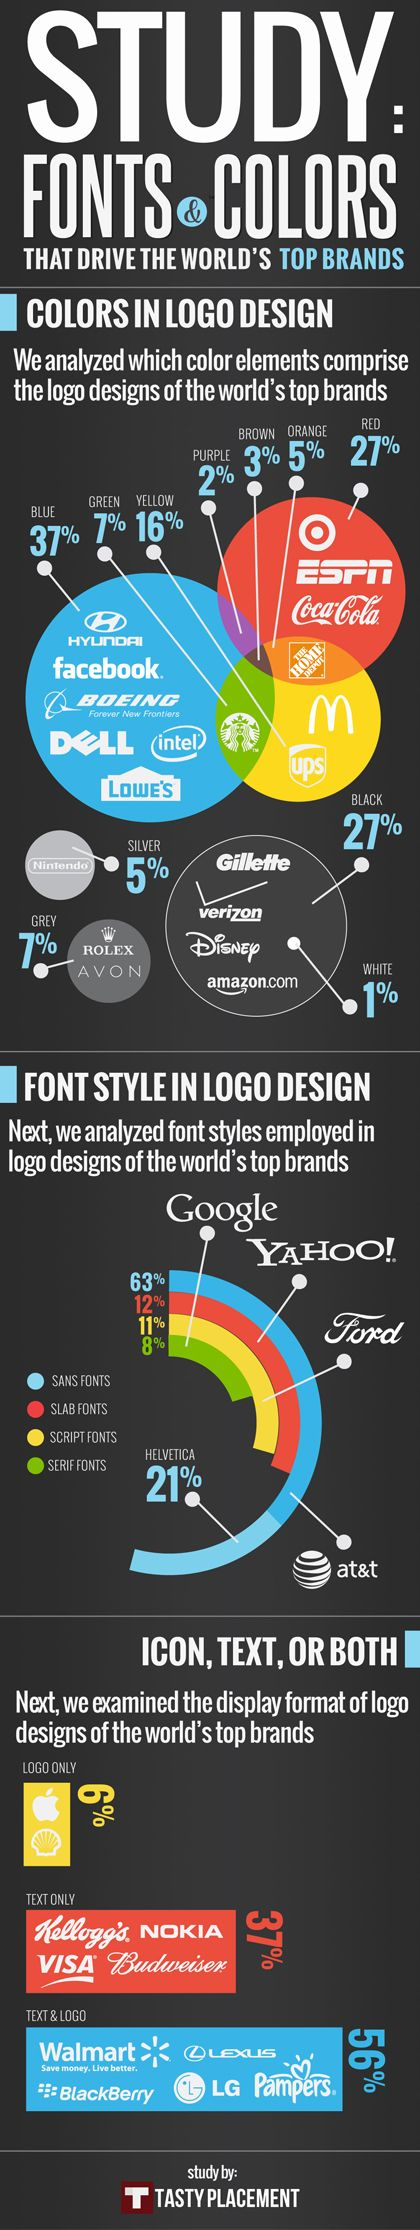 Fonts & Colors That Drive the World's Top Brands #infographic